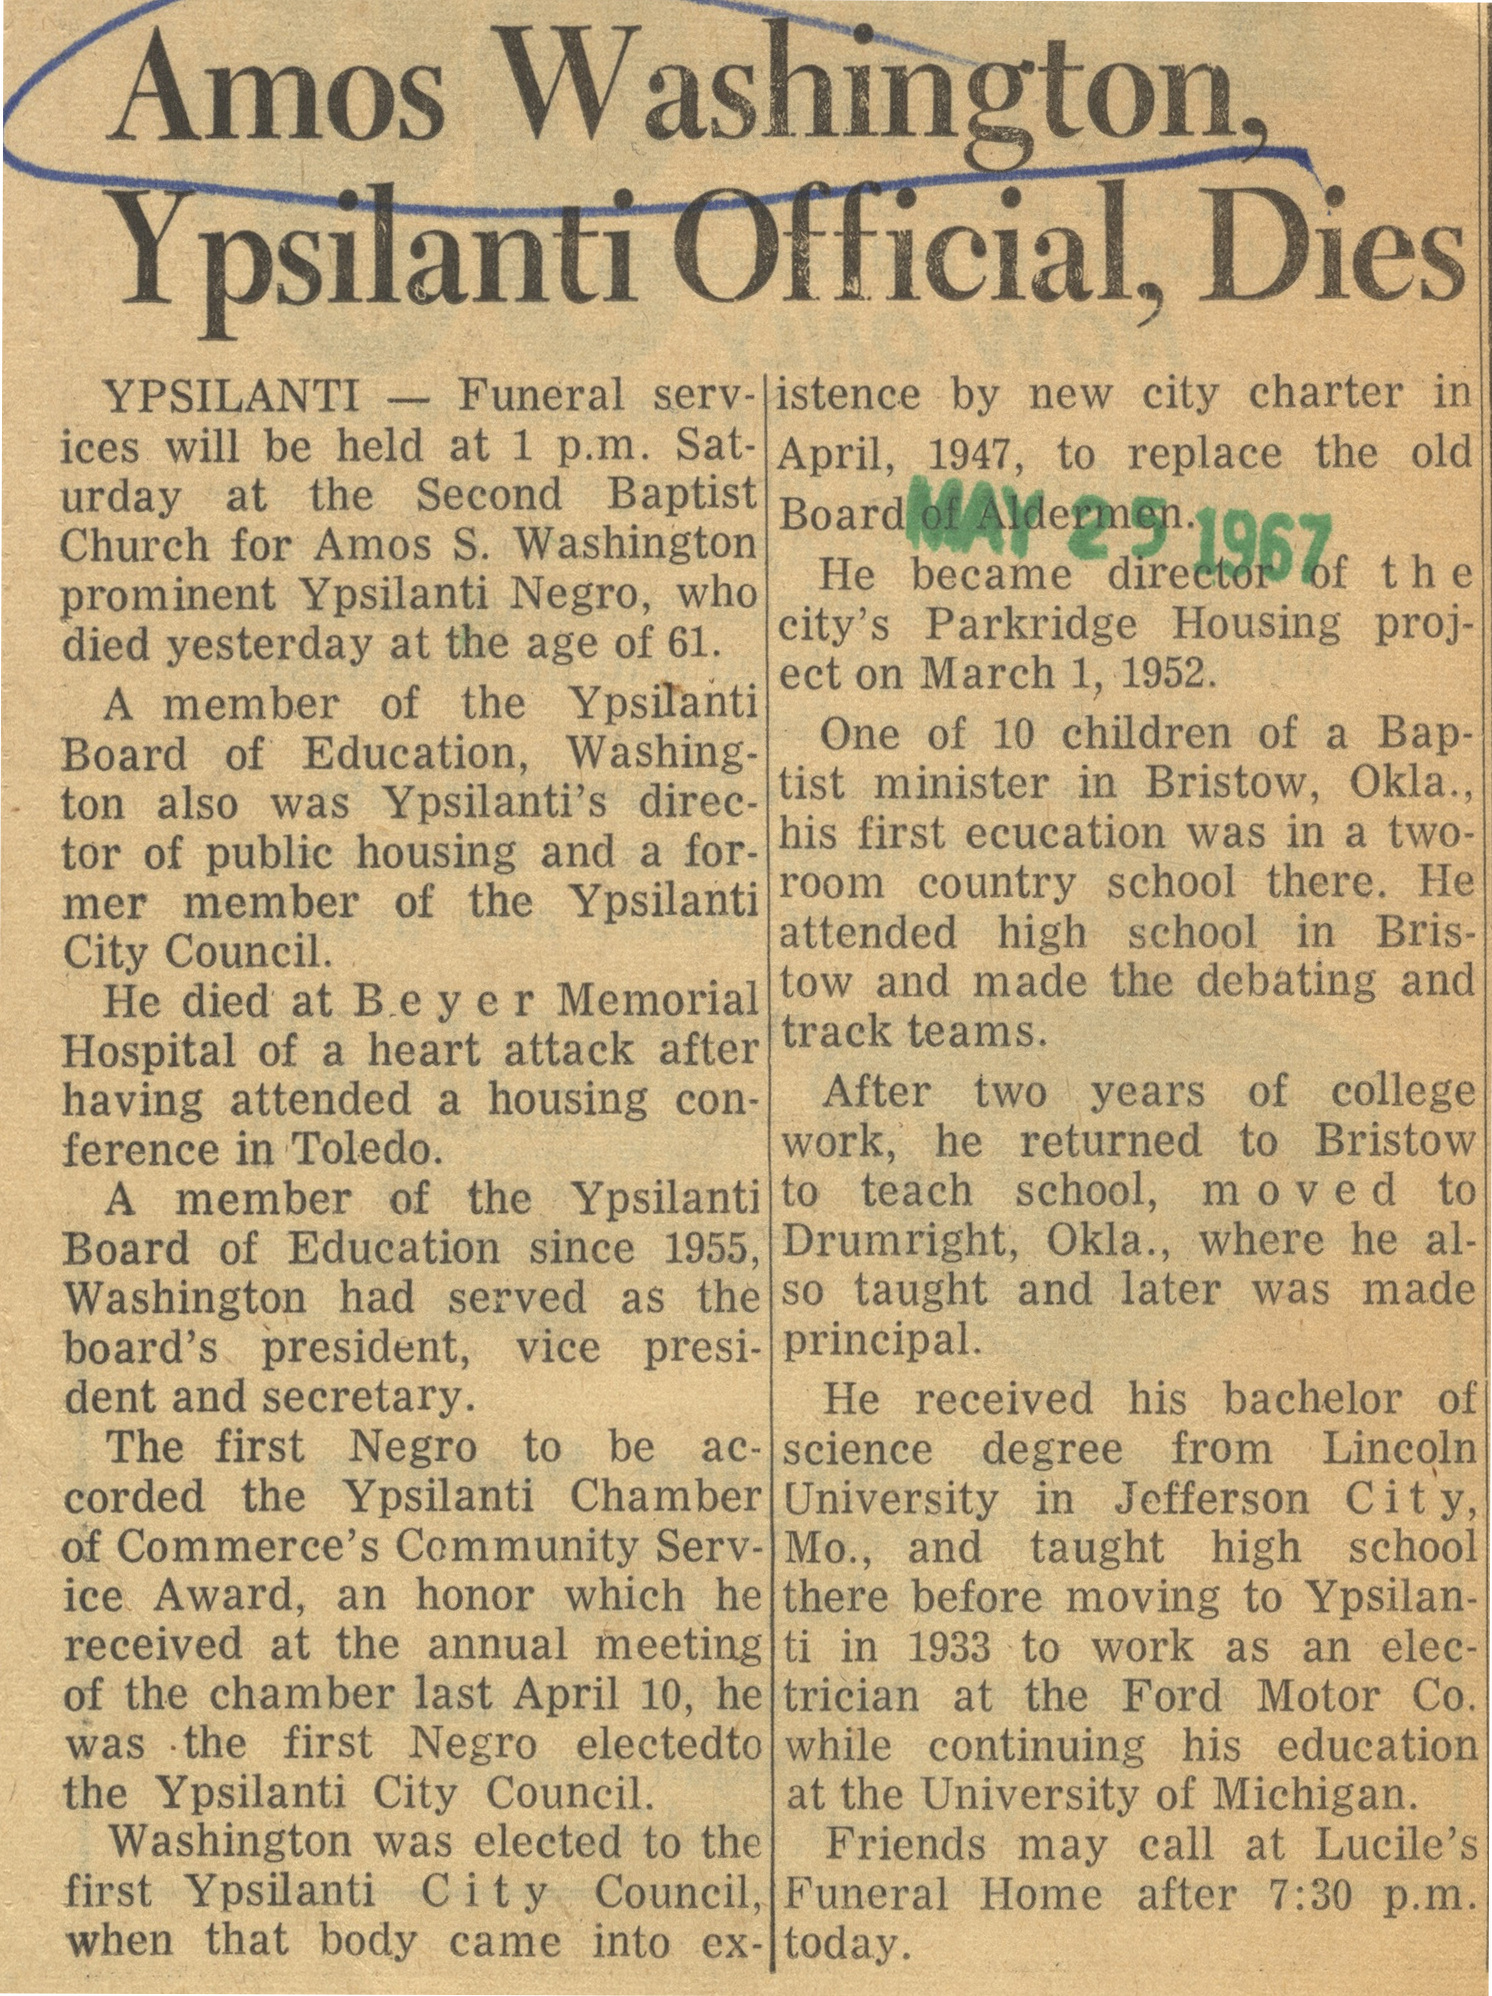 Amos Washington, Ypsilanti Official, Dies image